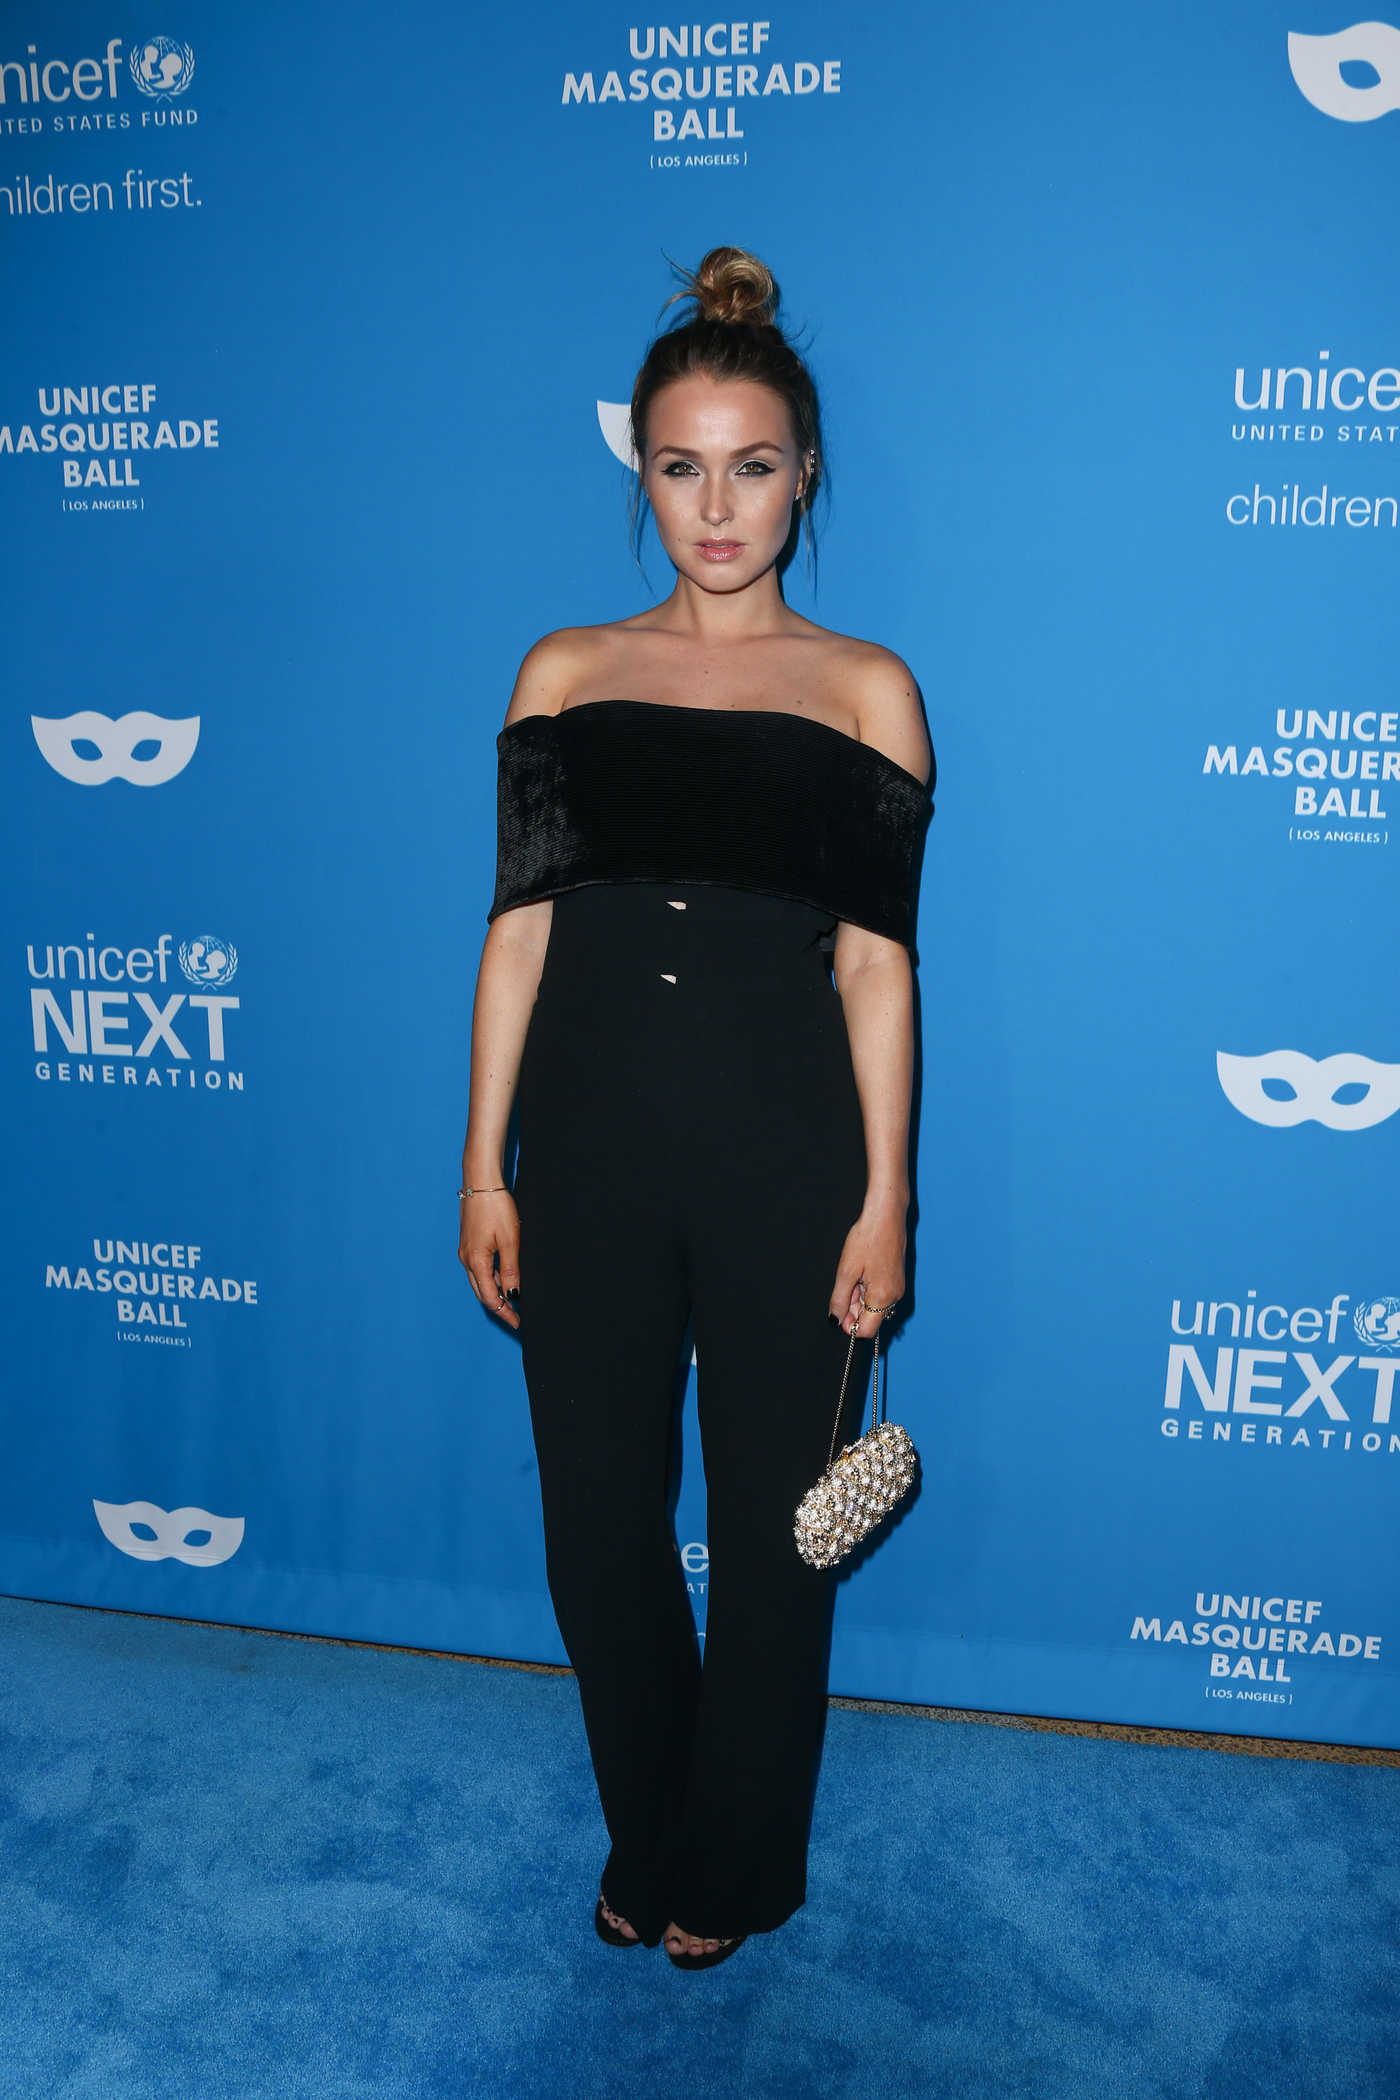 Camilla Luddington at the 2016 UNICEF Masquerade Ball in Los Angeles 10/27/2016